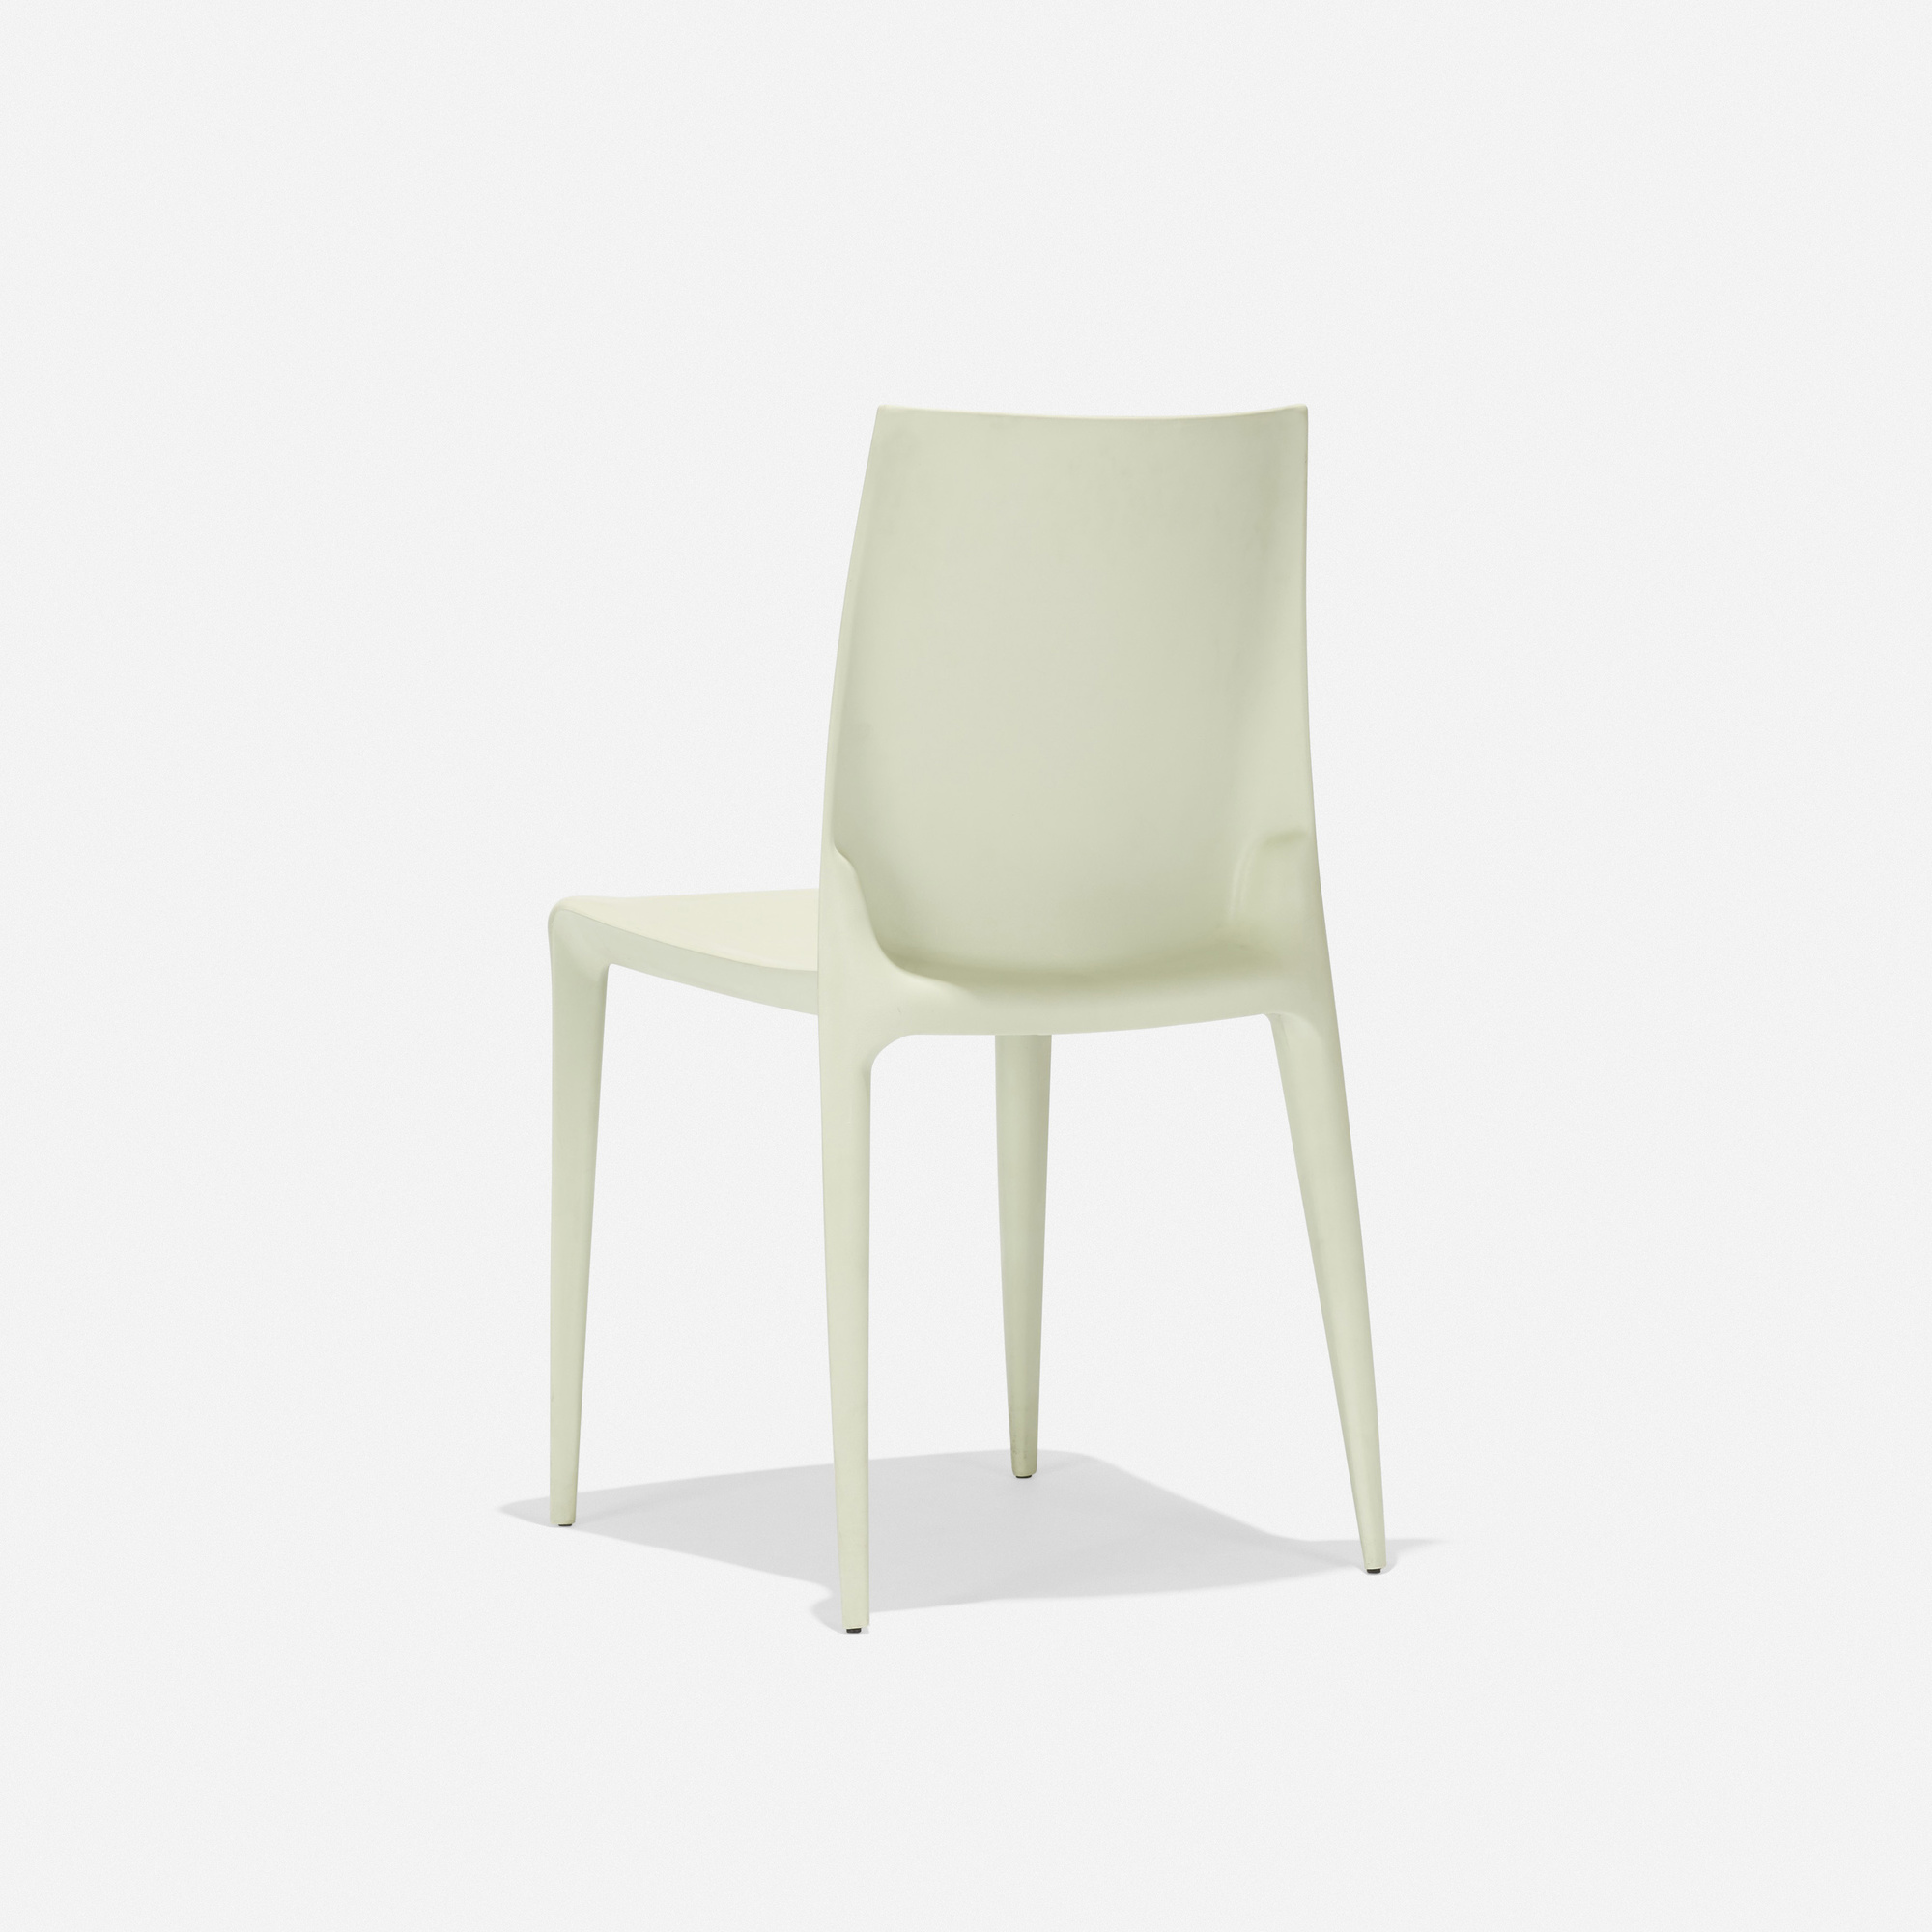 349: Mario Bellini / The Bellini chair (2 of 3)